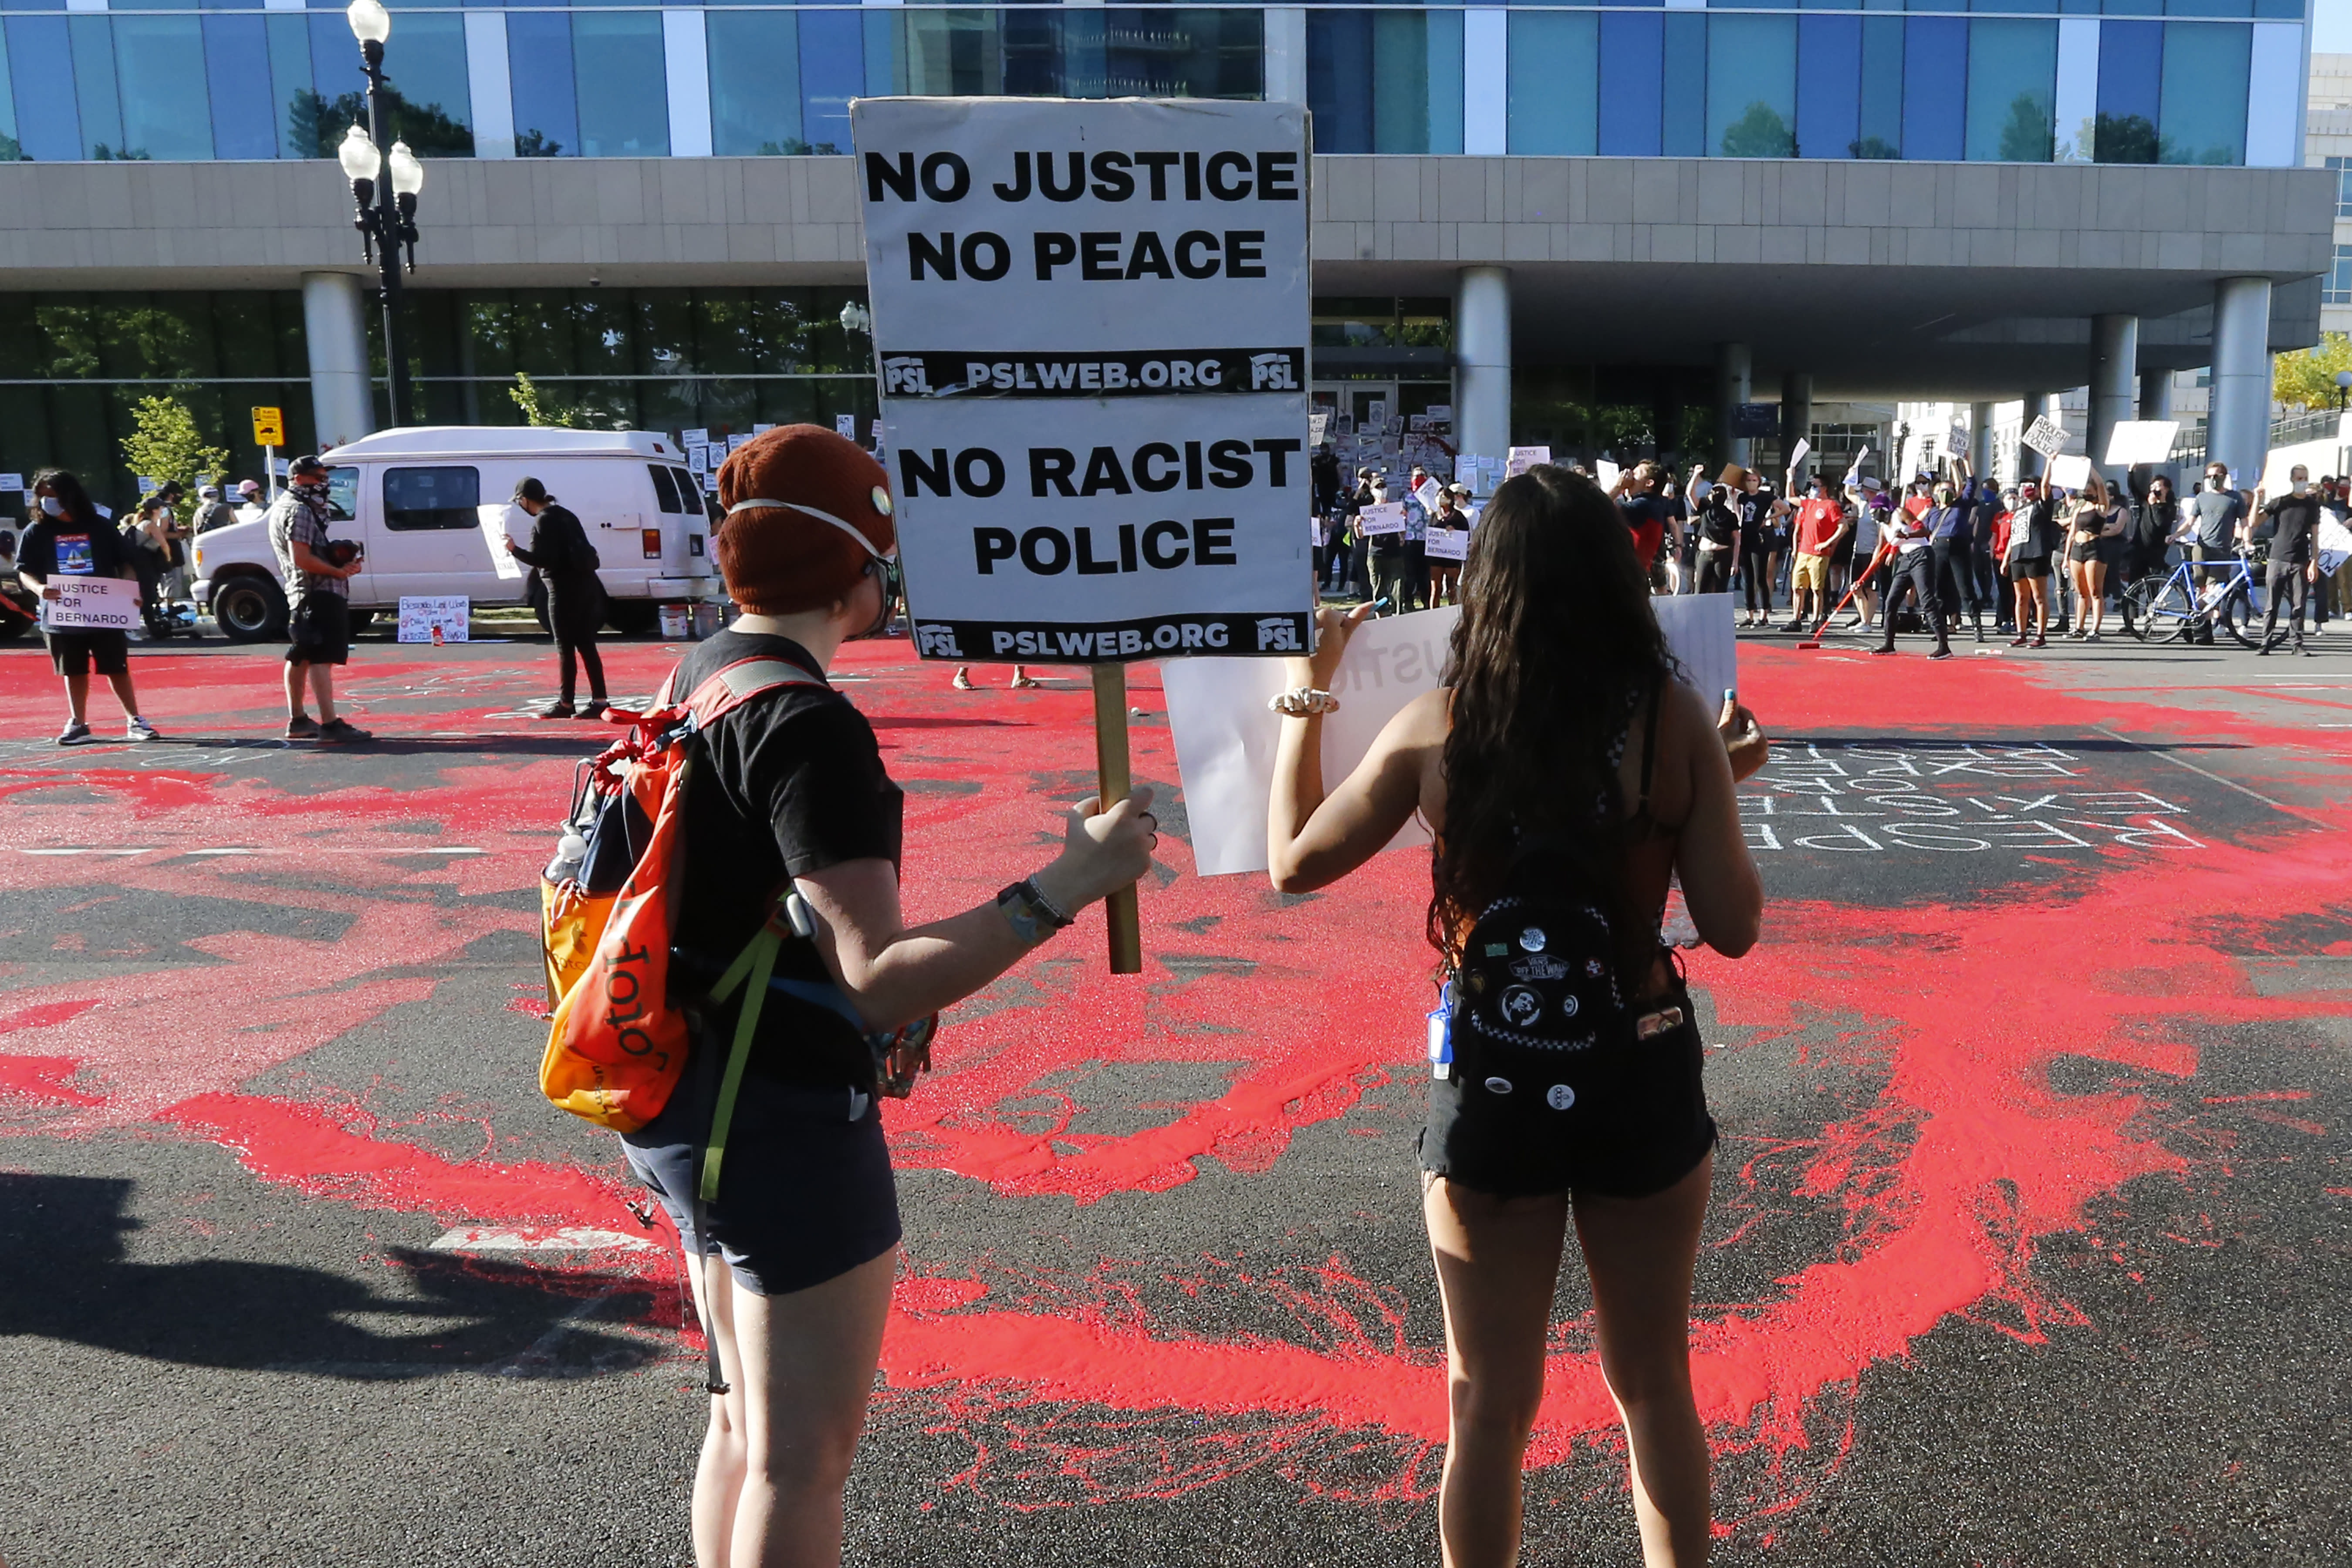 FILE - In this July 9, 2020, file photo, protesters gather in front of district attorney's office in Salt Lake City. Some Black Lives Matter protesters in Utah could face up to life in prison if they're convicted of splashing red paint and smashing windows during a protest, a potential punishment that stands out among demonstrators arrested around the country and one that critics say doesn't fit the alleged crime. (AP Photo/Rick Bowmer, File)